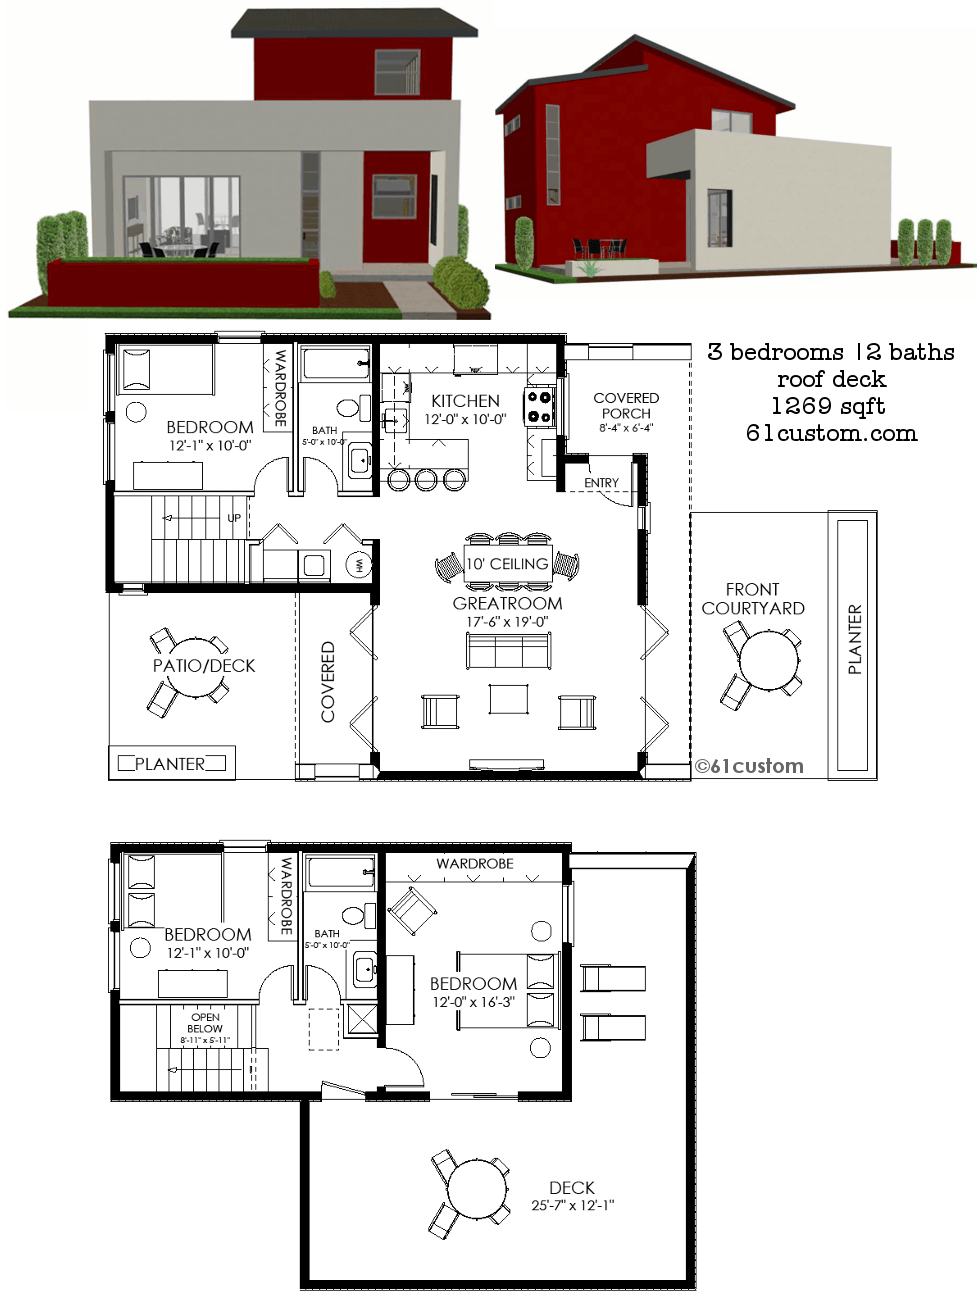 Modern house plans floor plans contemporary home plans Floor plan of a modern house